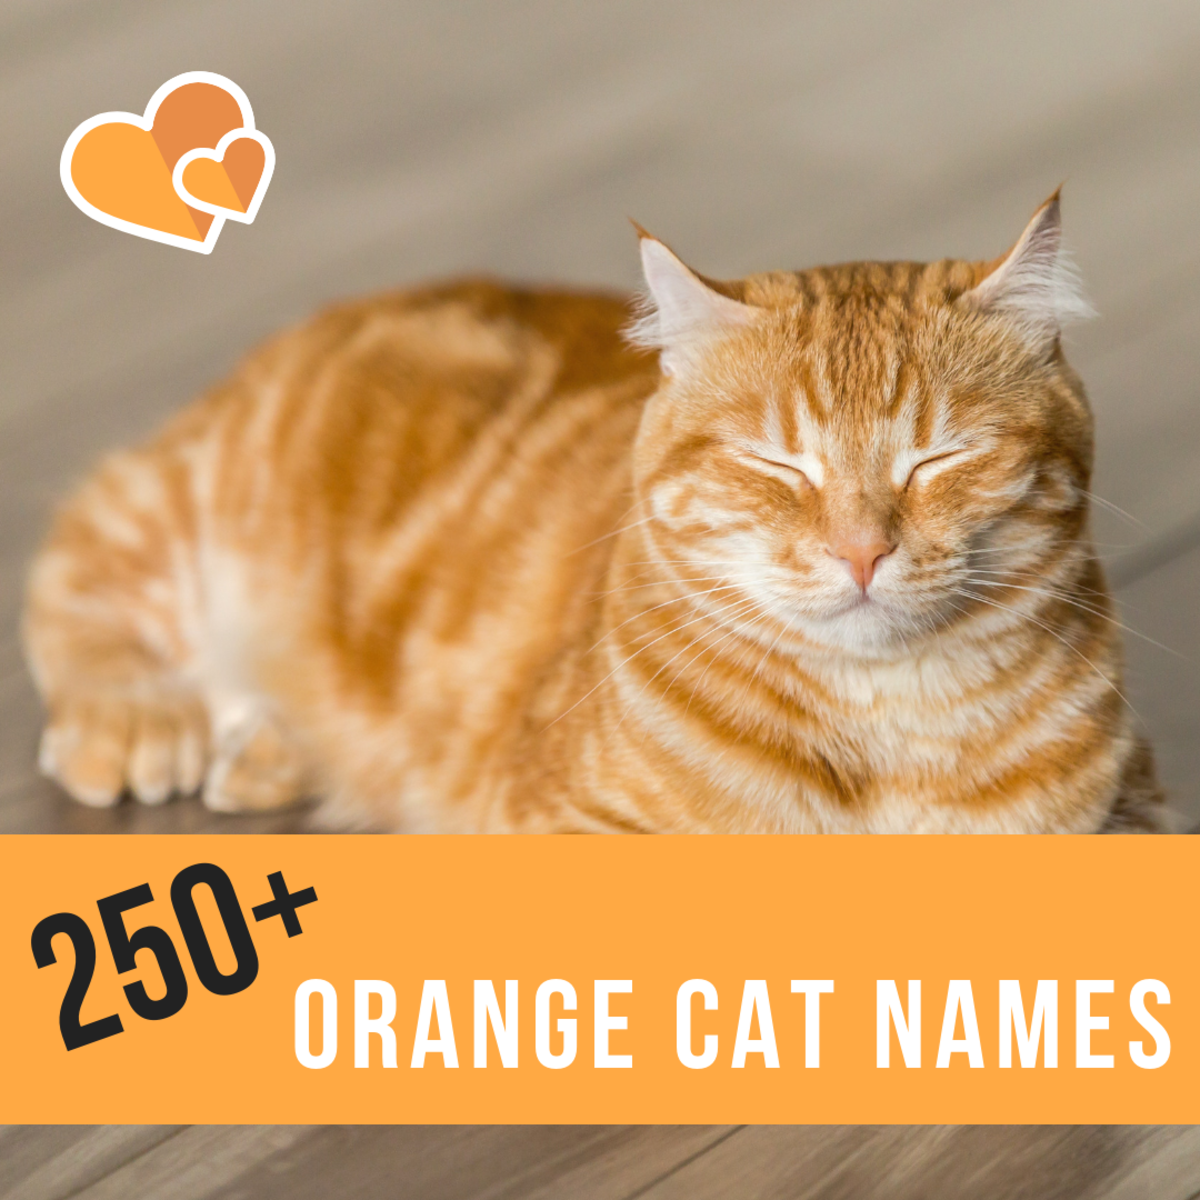 250+ fun orange cat names to choose from.